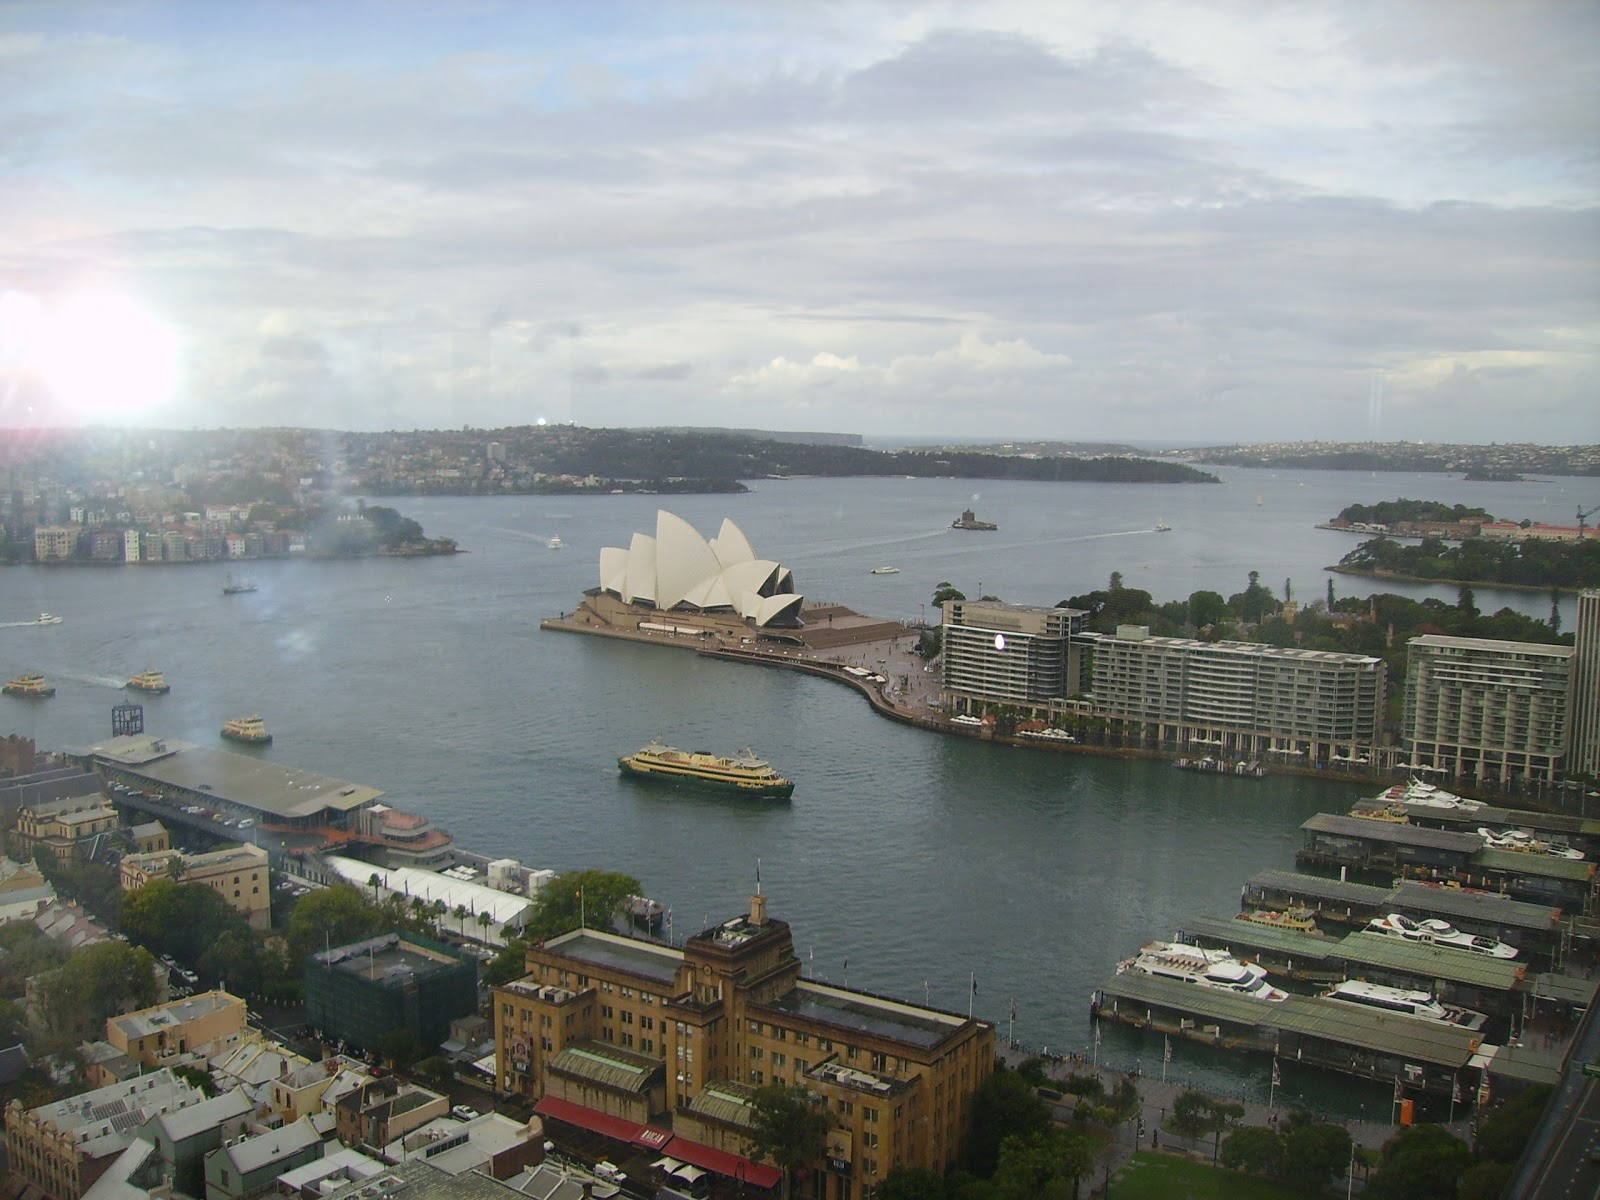 Murder At The Rocks is set mainly around the historic Rocks area of Sydney  Harbour, and Circular Quay as shown here.